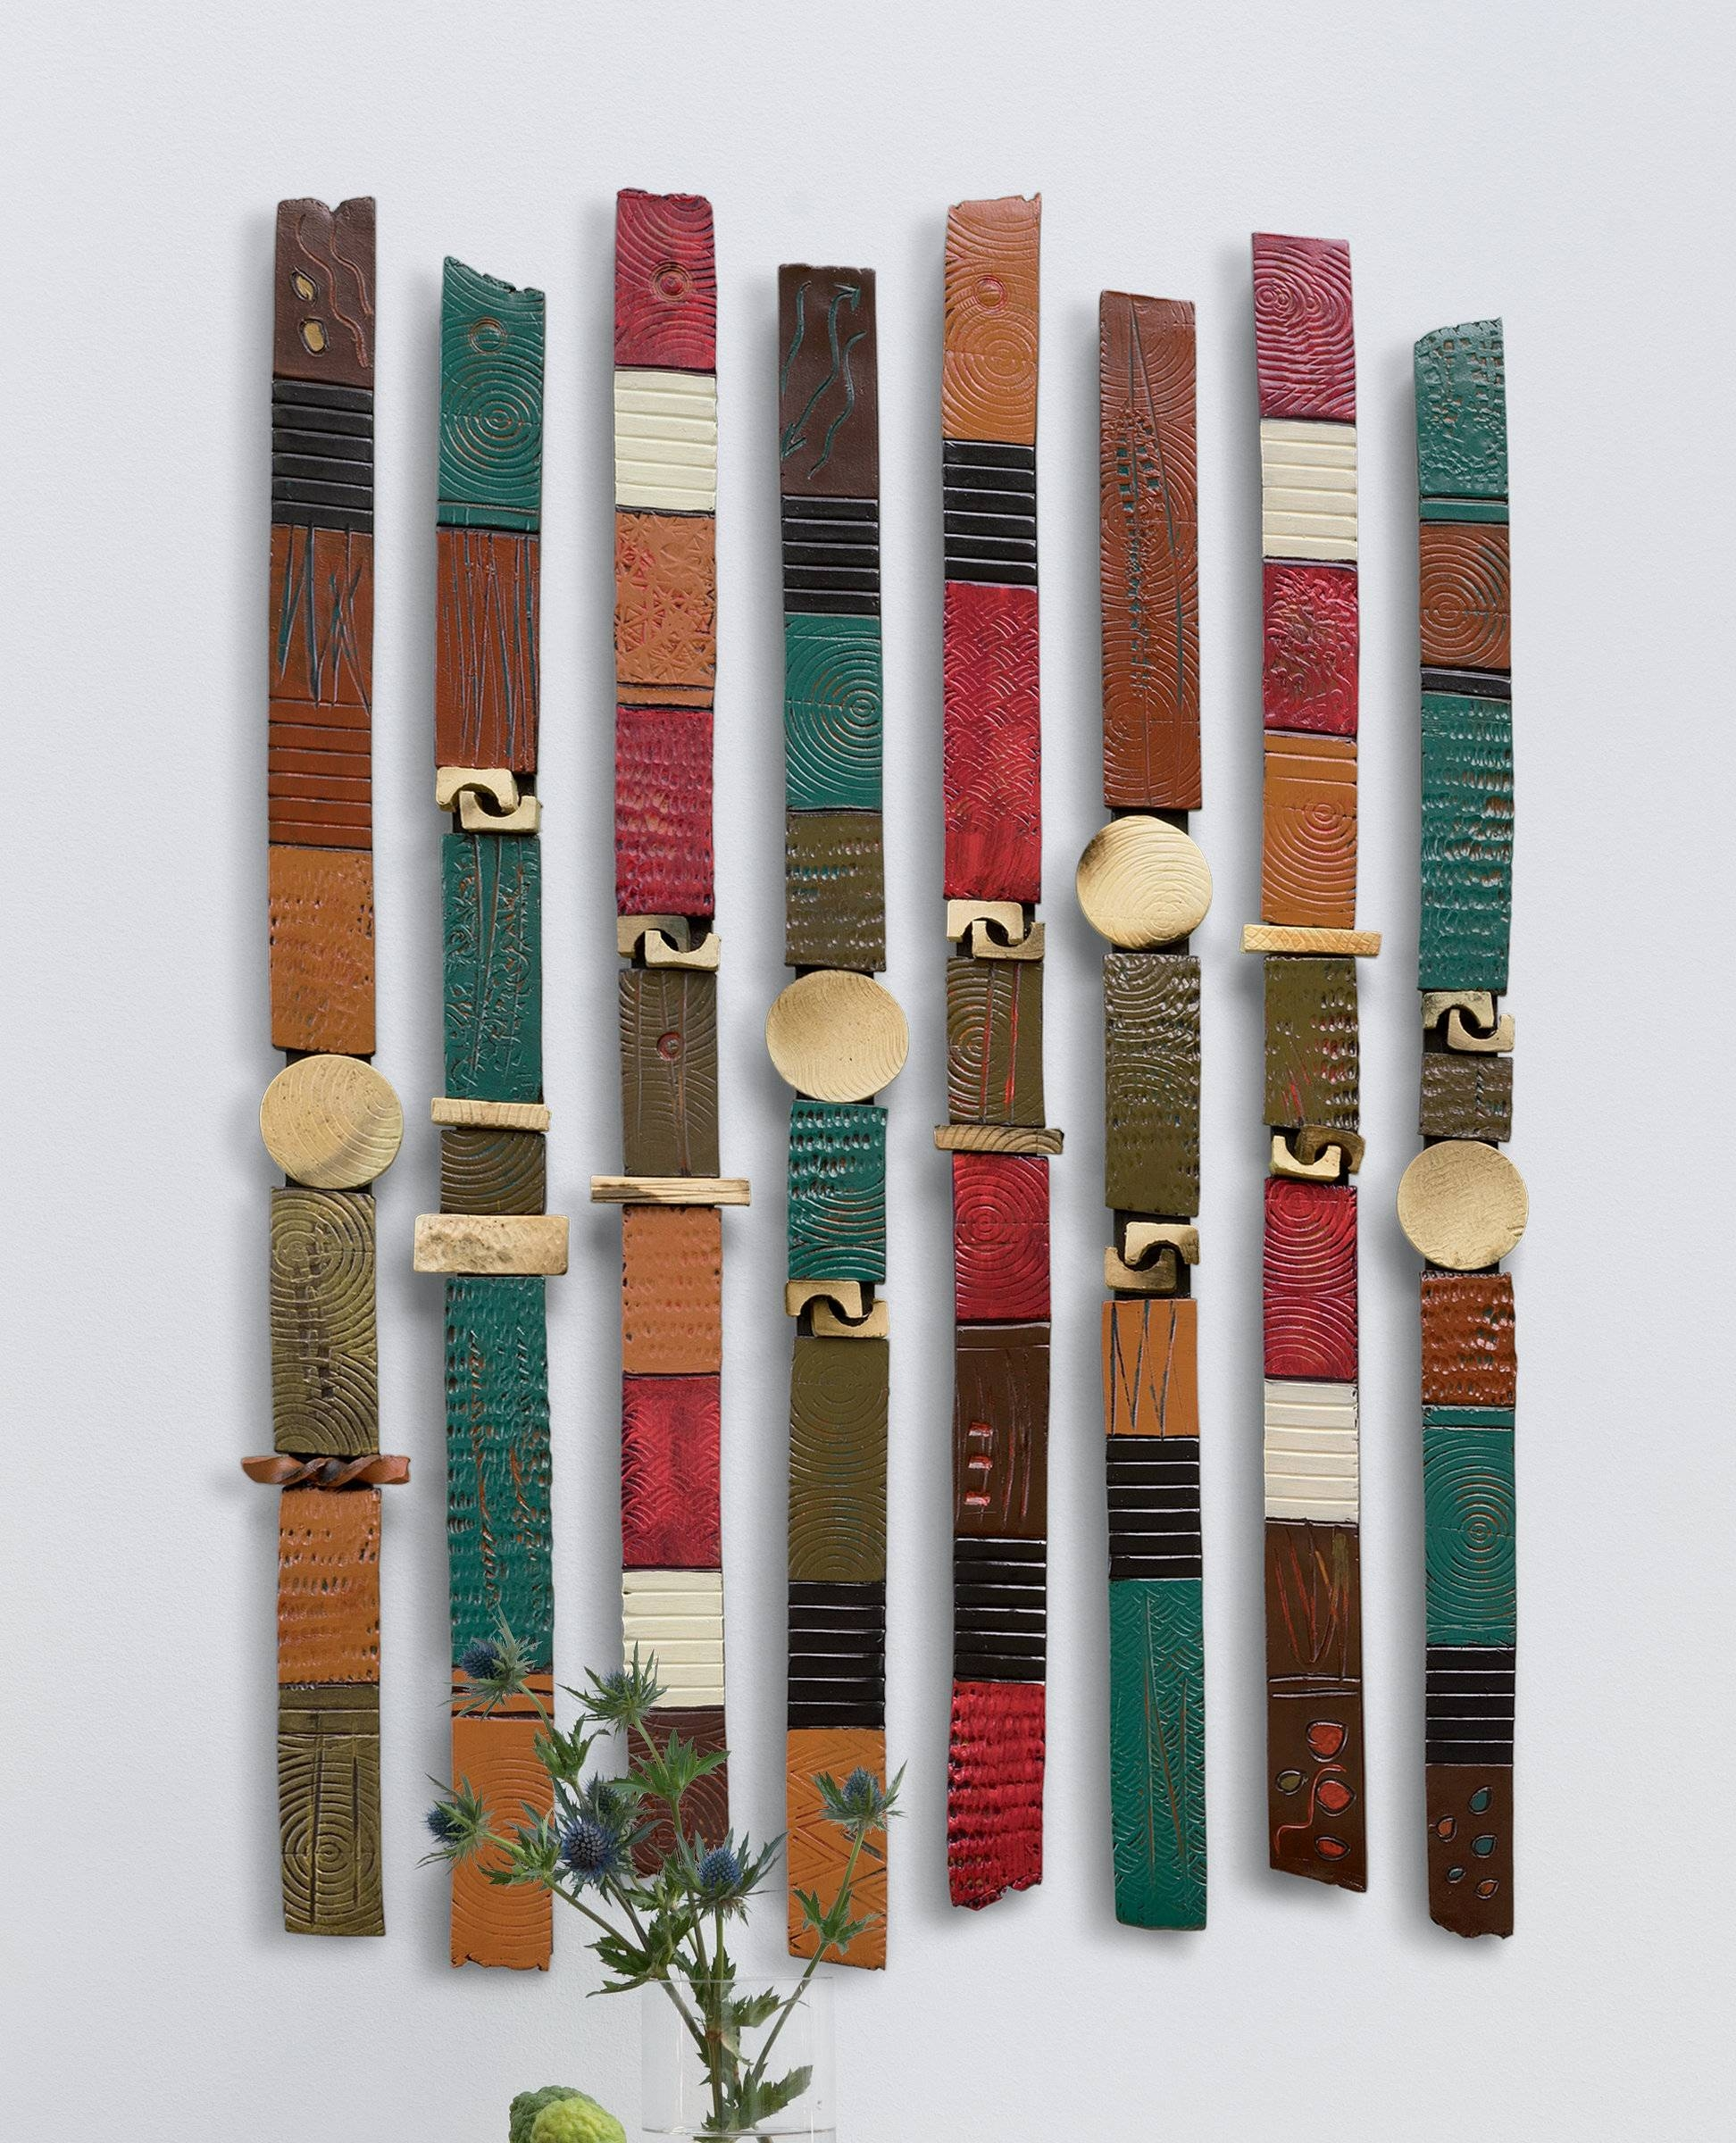 Story Sticksrhonda Cearlock (Ceramic Wall Sculpture) | Artful Home Intended For 2017 Large Ceramic Wall Art (View 19 of 25)